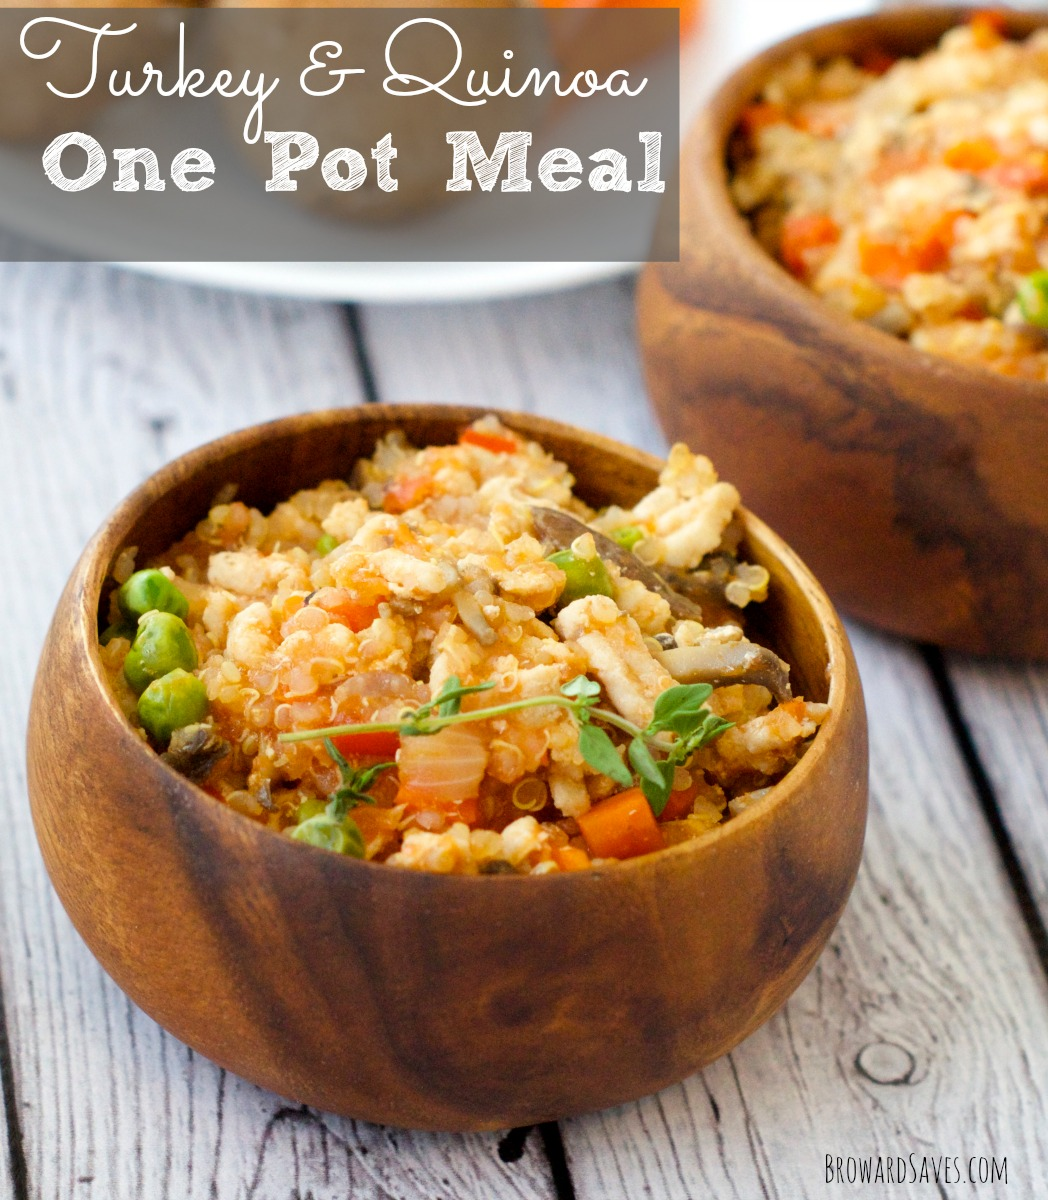 3. Turkey & Quinoa One-Pot Meal